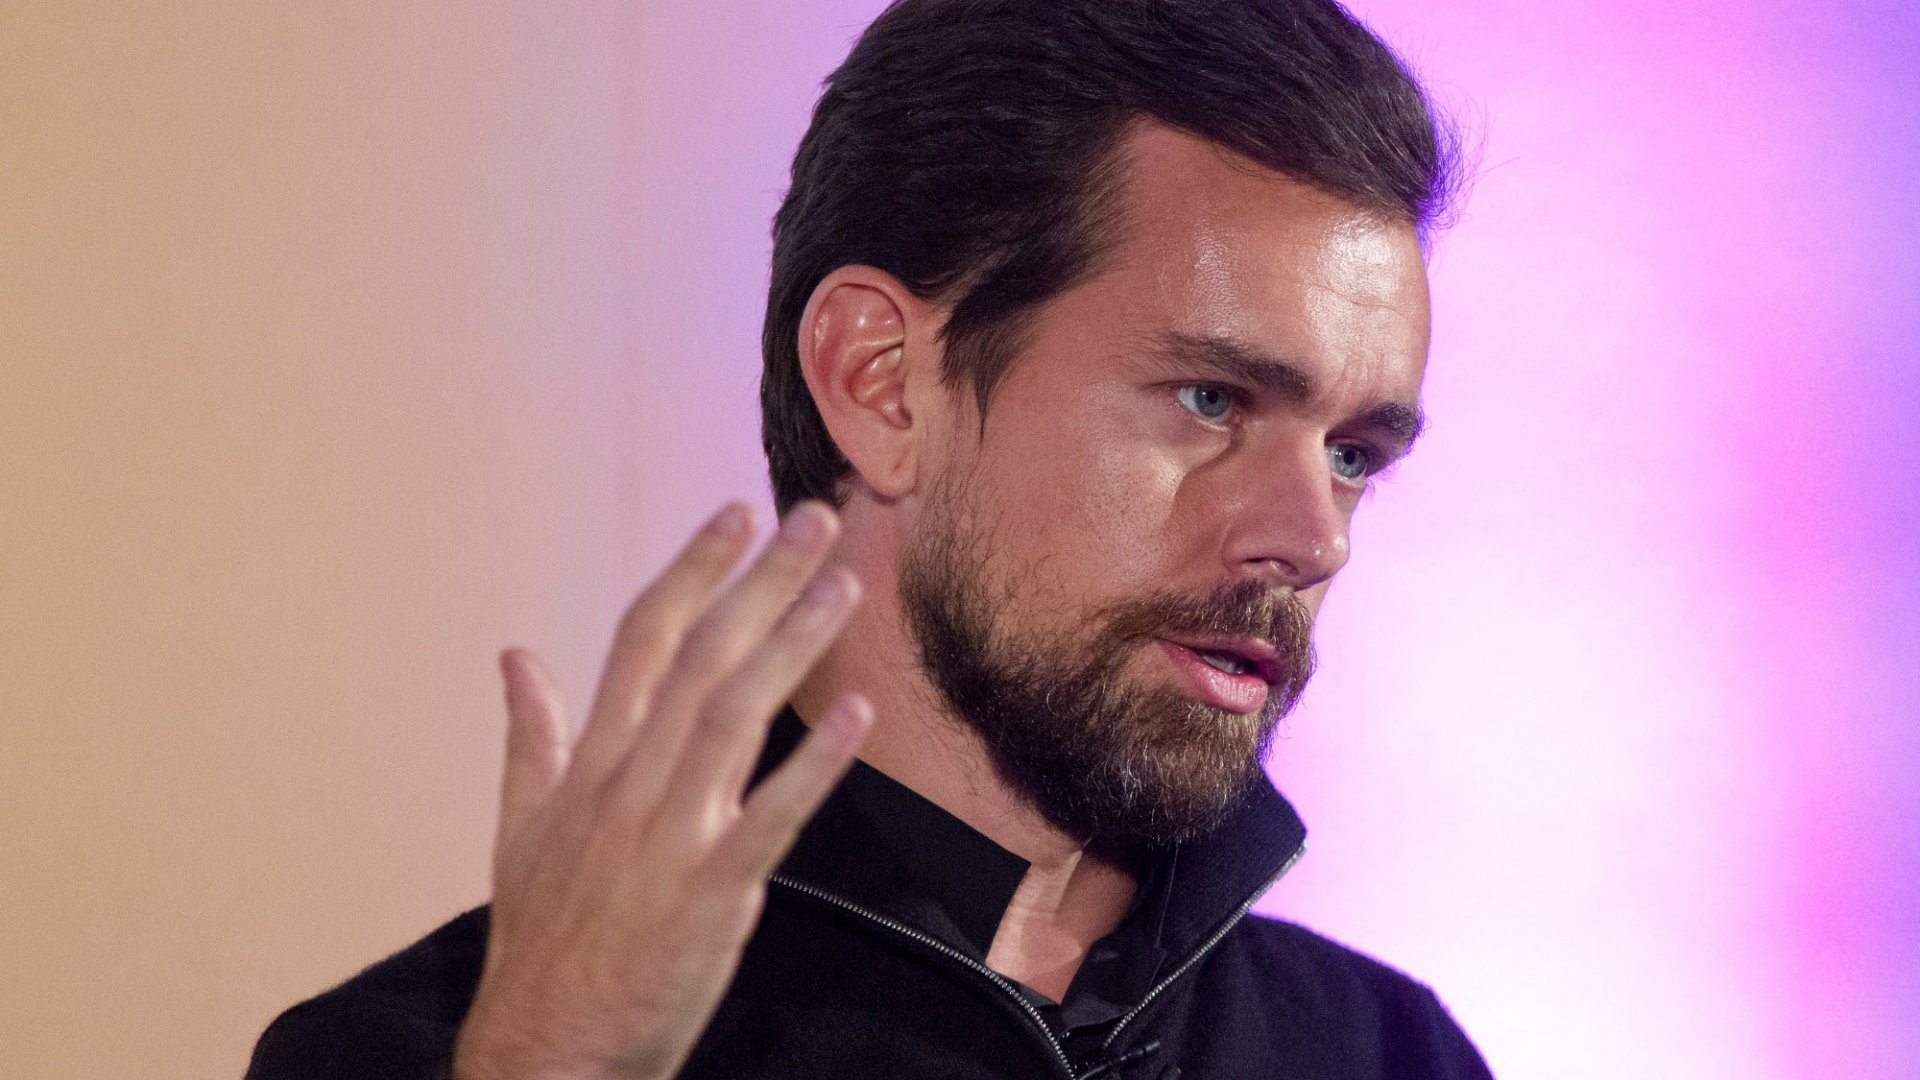 Here's Why Square's Initial Public Offering Is a Glimpse of the Future